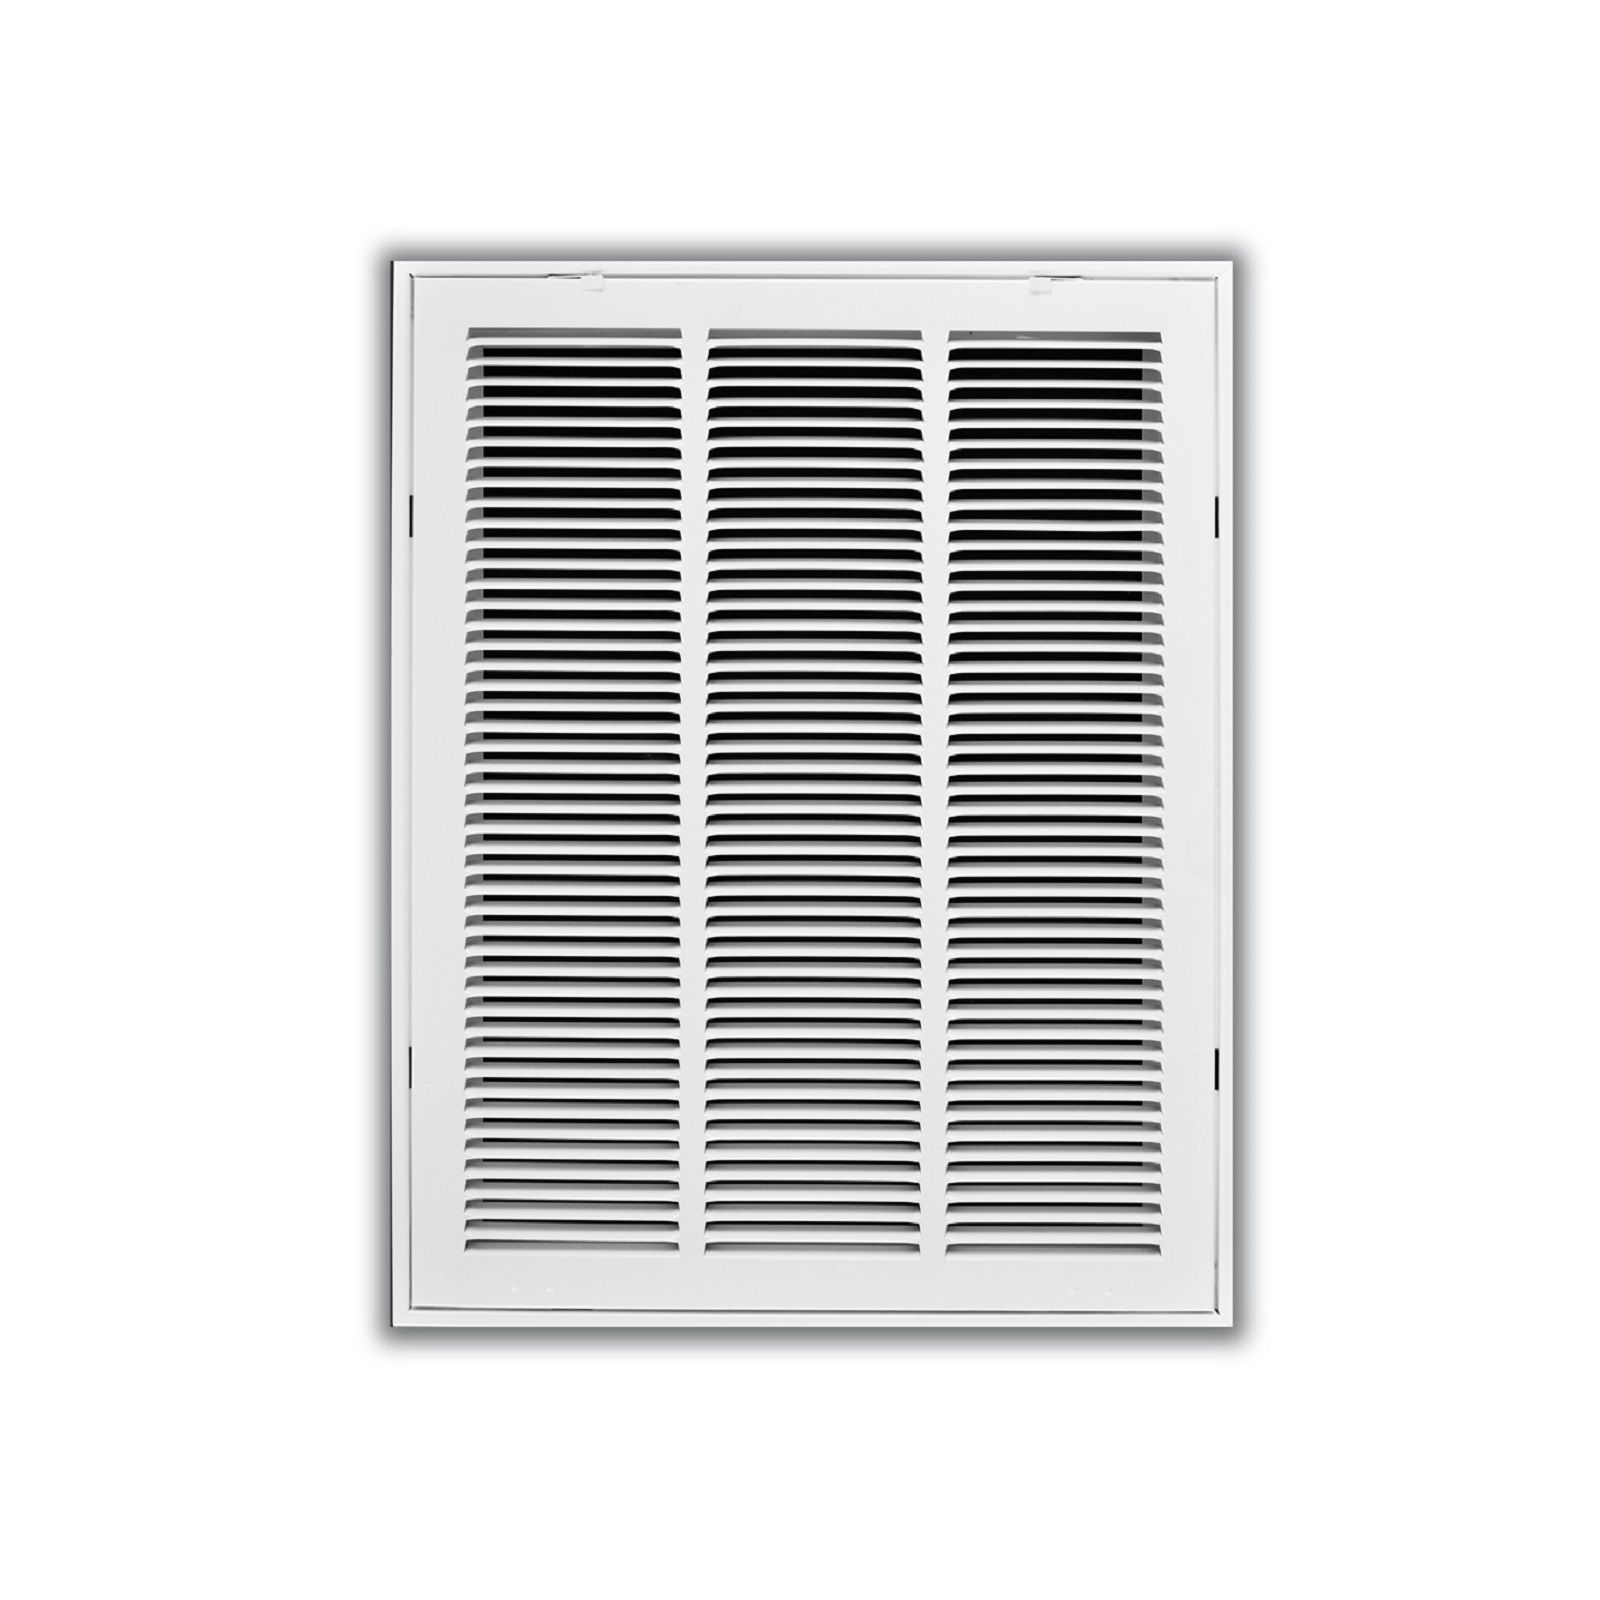 "TRUaire 190 30X14 - Steel Return Air Filter Grille With Fixed Hinged Face, White, 30"" X 14"""